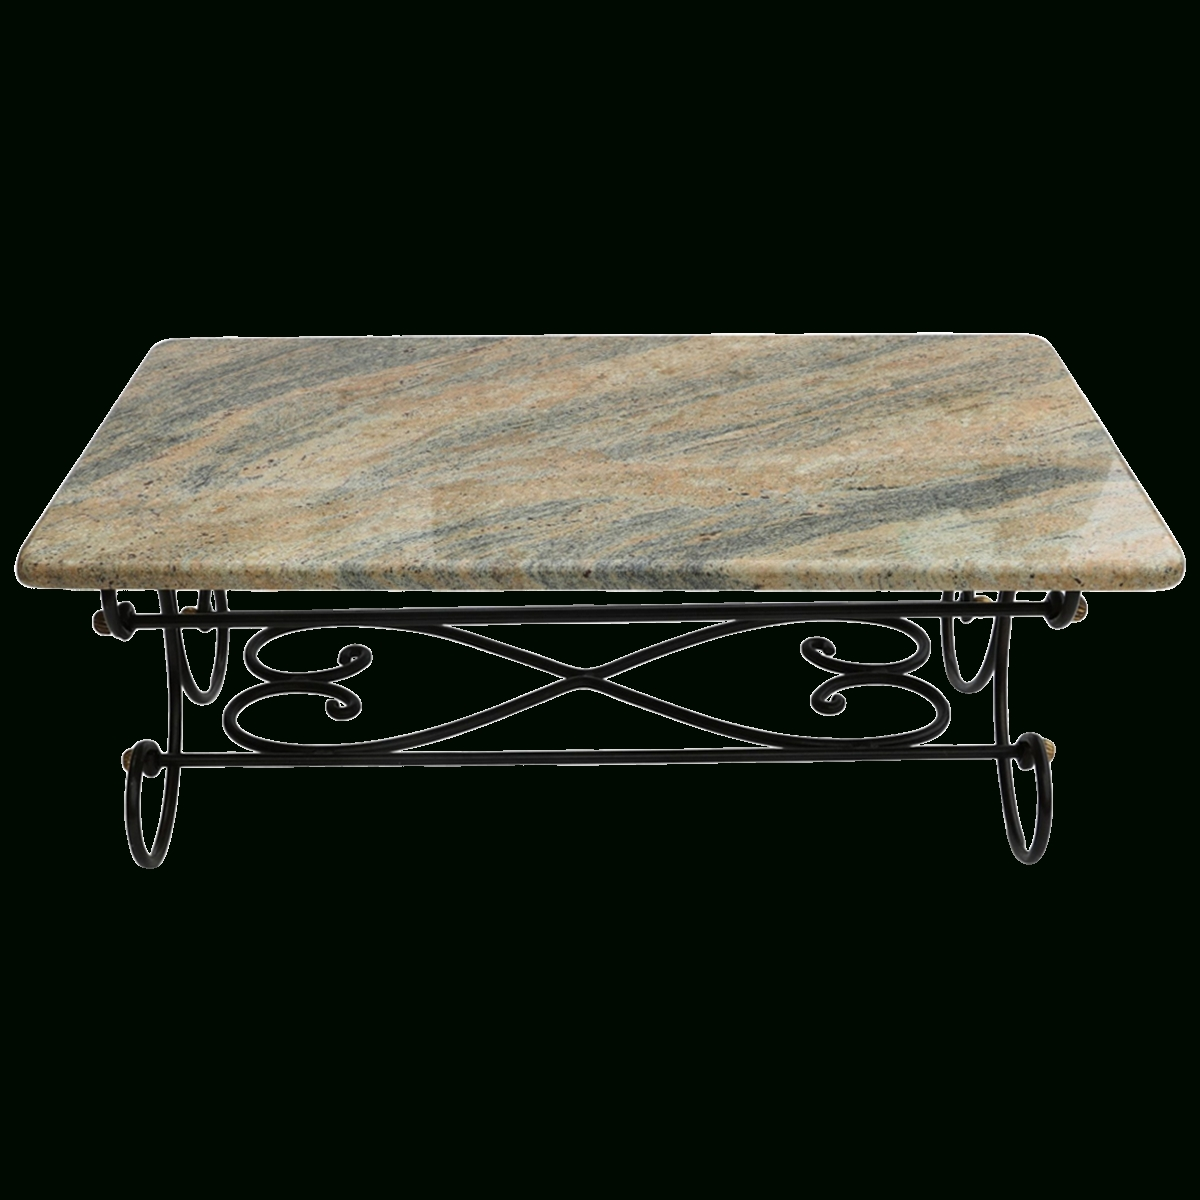 Viyet - Designer Furniture - Tables - Vintage Wrought Iron And intended for Element Ivory Rectangular Coffee Tables (Image 29 of 30)